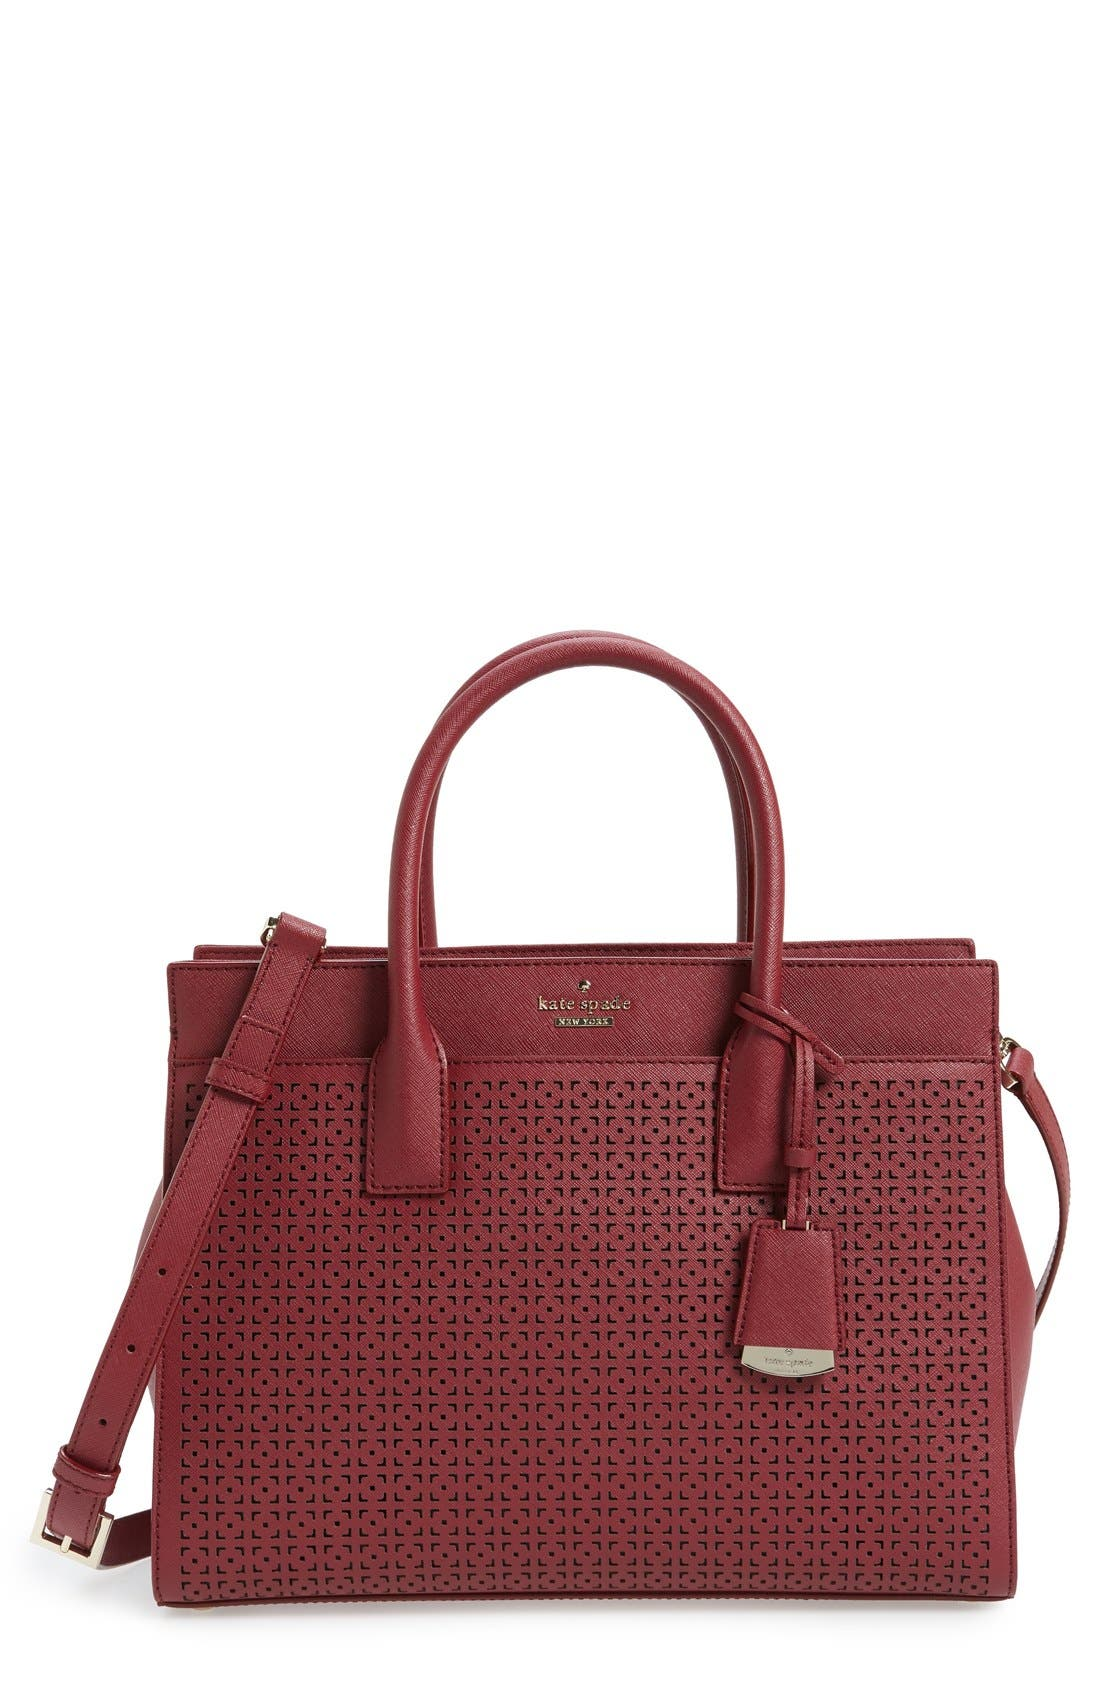 Alternate Image 1 Selected - kate spade new york 'cameron street - candace' perforated satchel